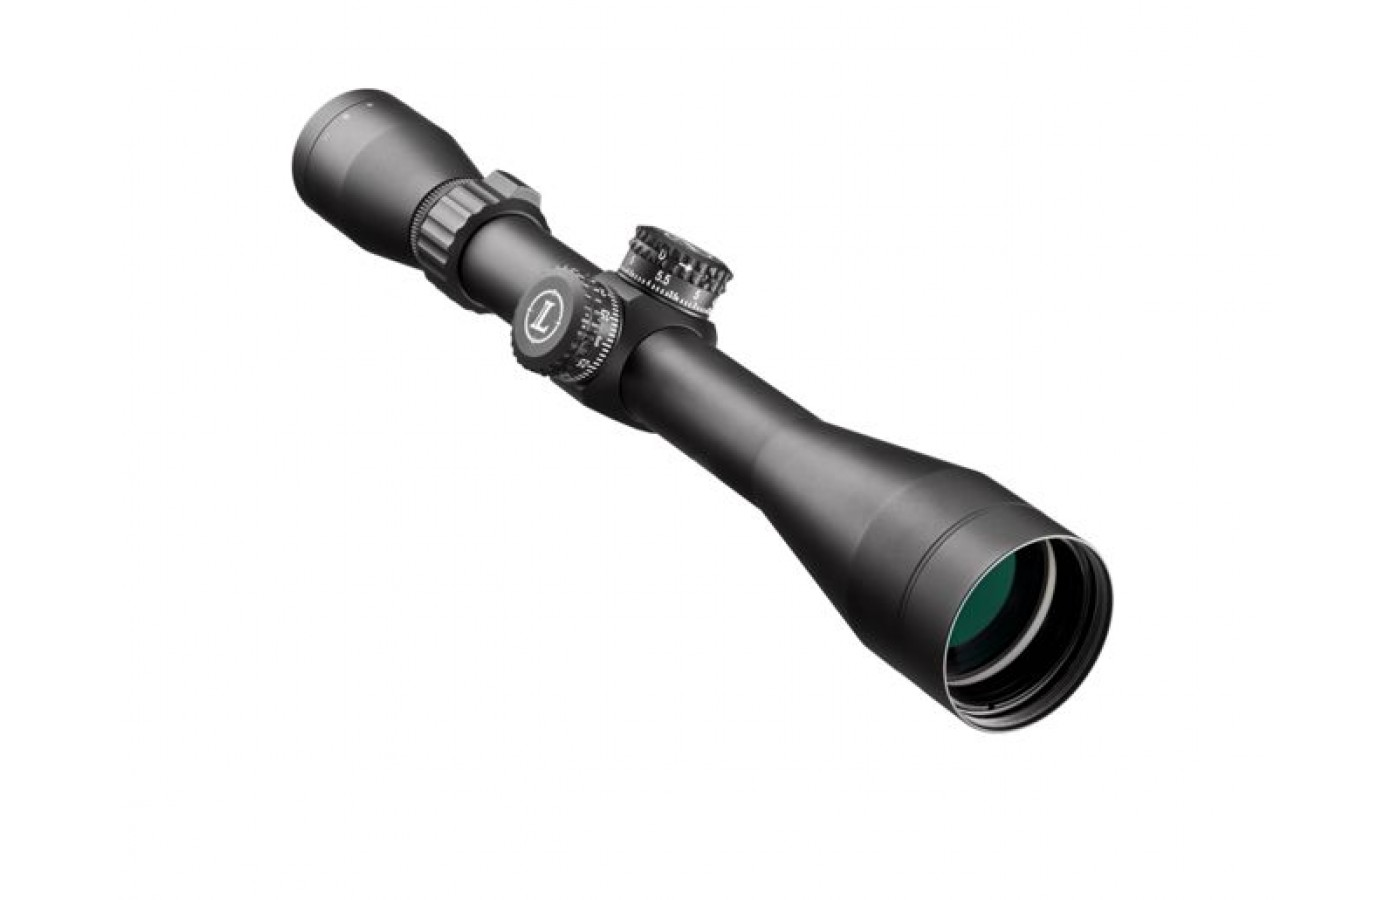 The Leupold Mark AR offers a gas mixture within the scope in order to provide waterproofing and fog-proofing.